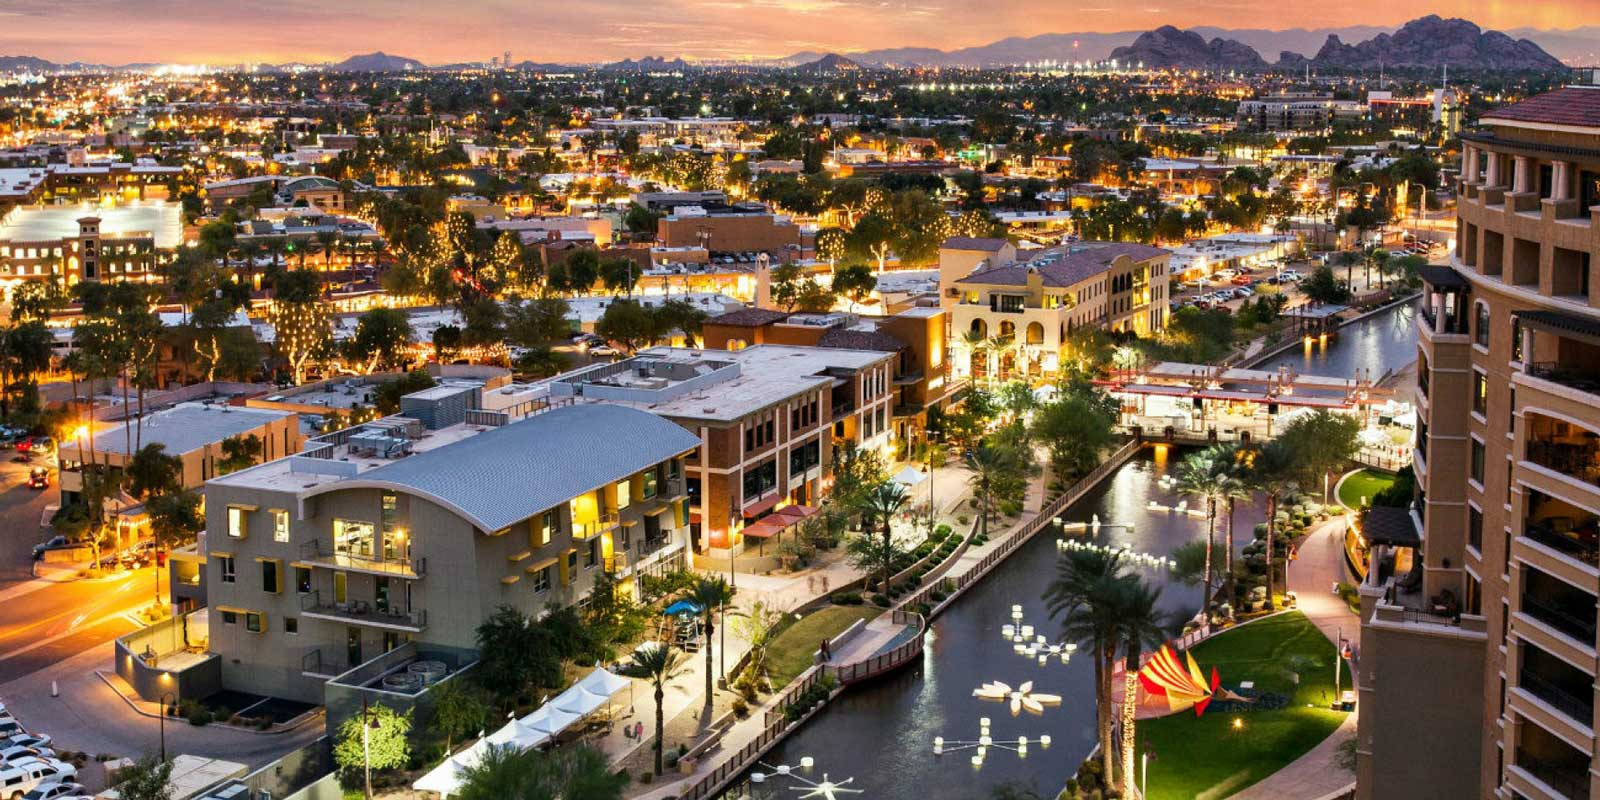 Best Places to Live in Scottsdale, AZ 2021